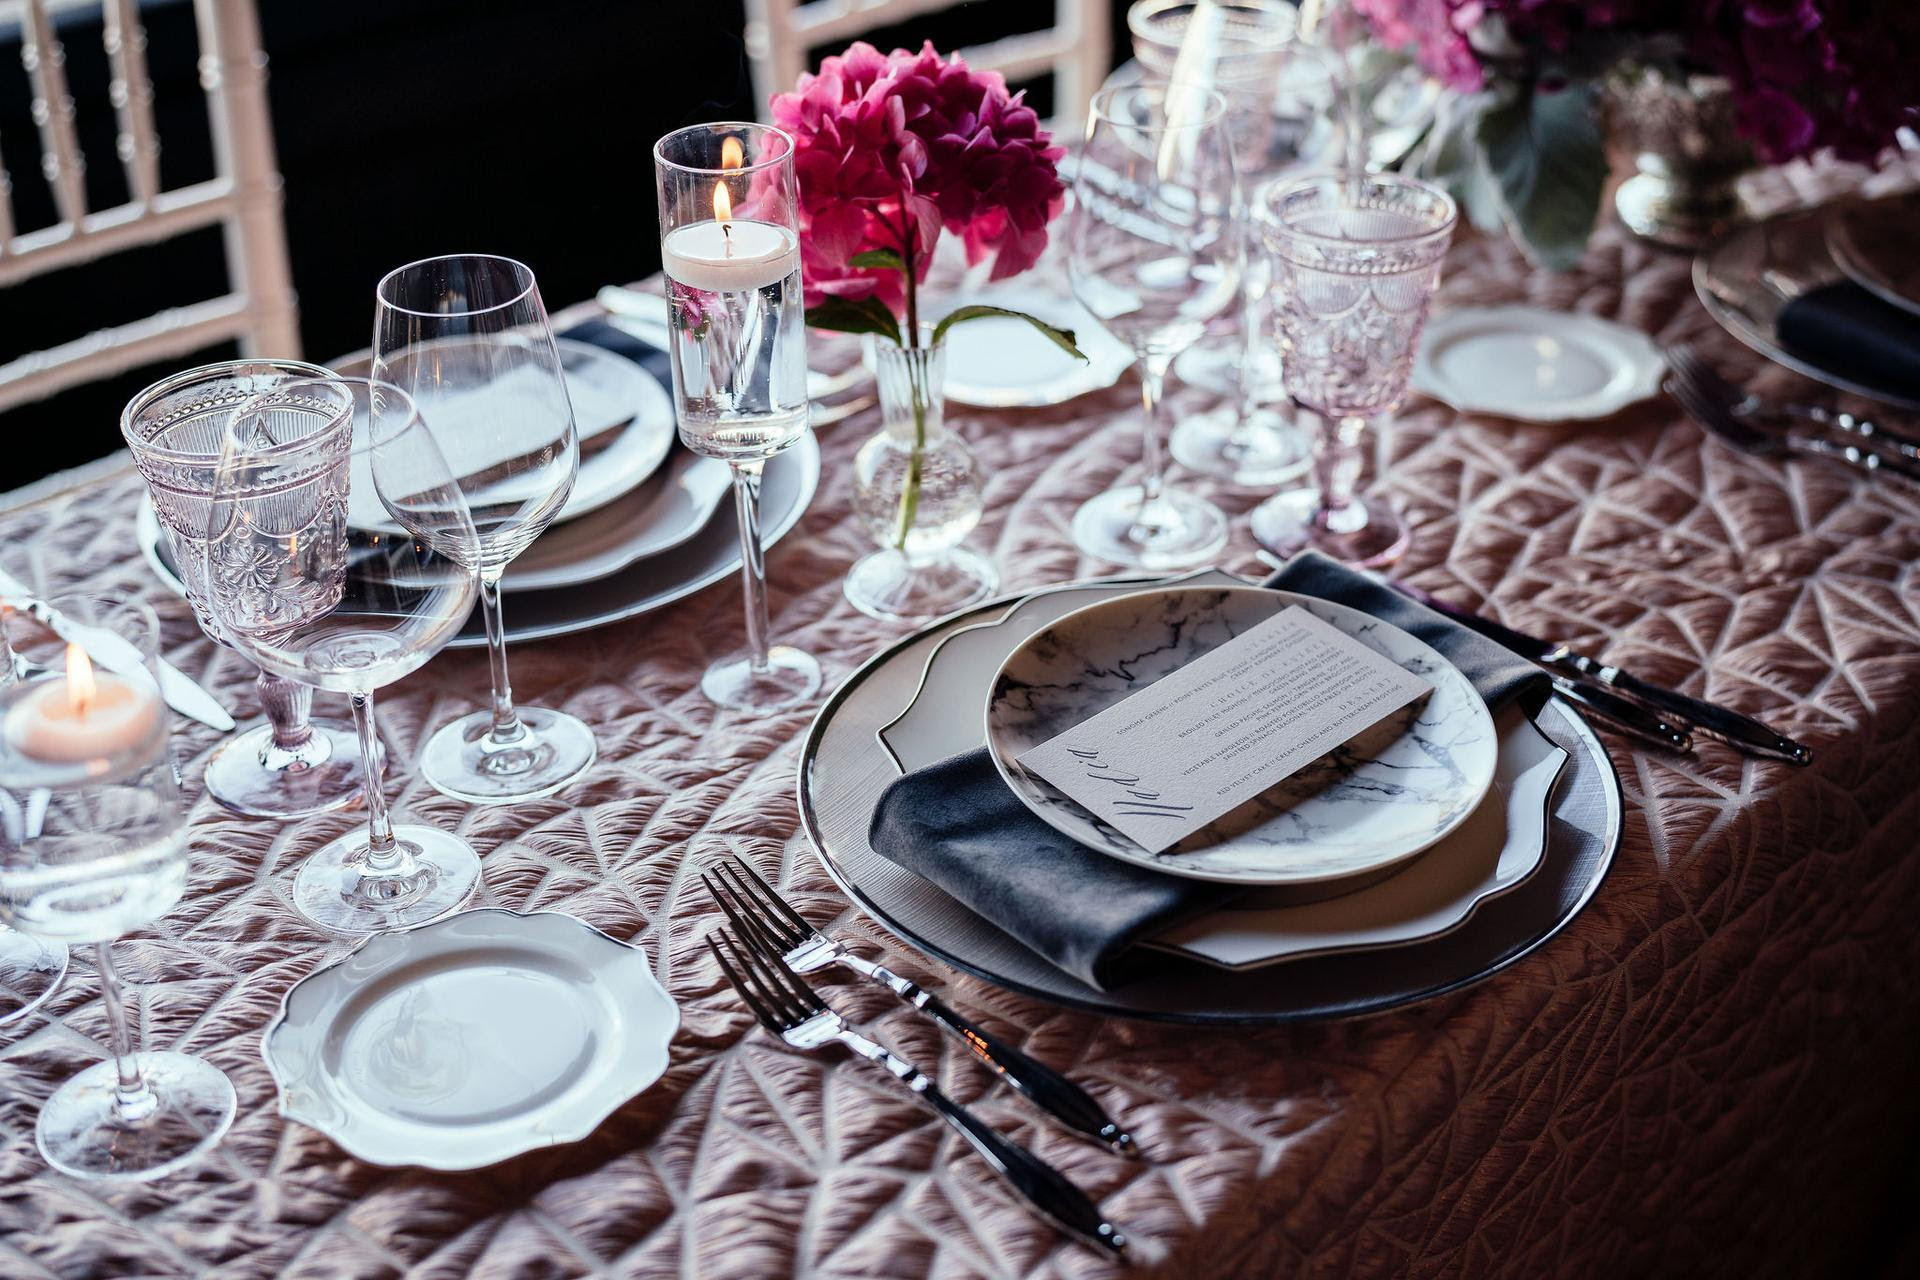 Beautiful table setting with pail pink and textured tablecloth and gray linen napkins